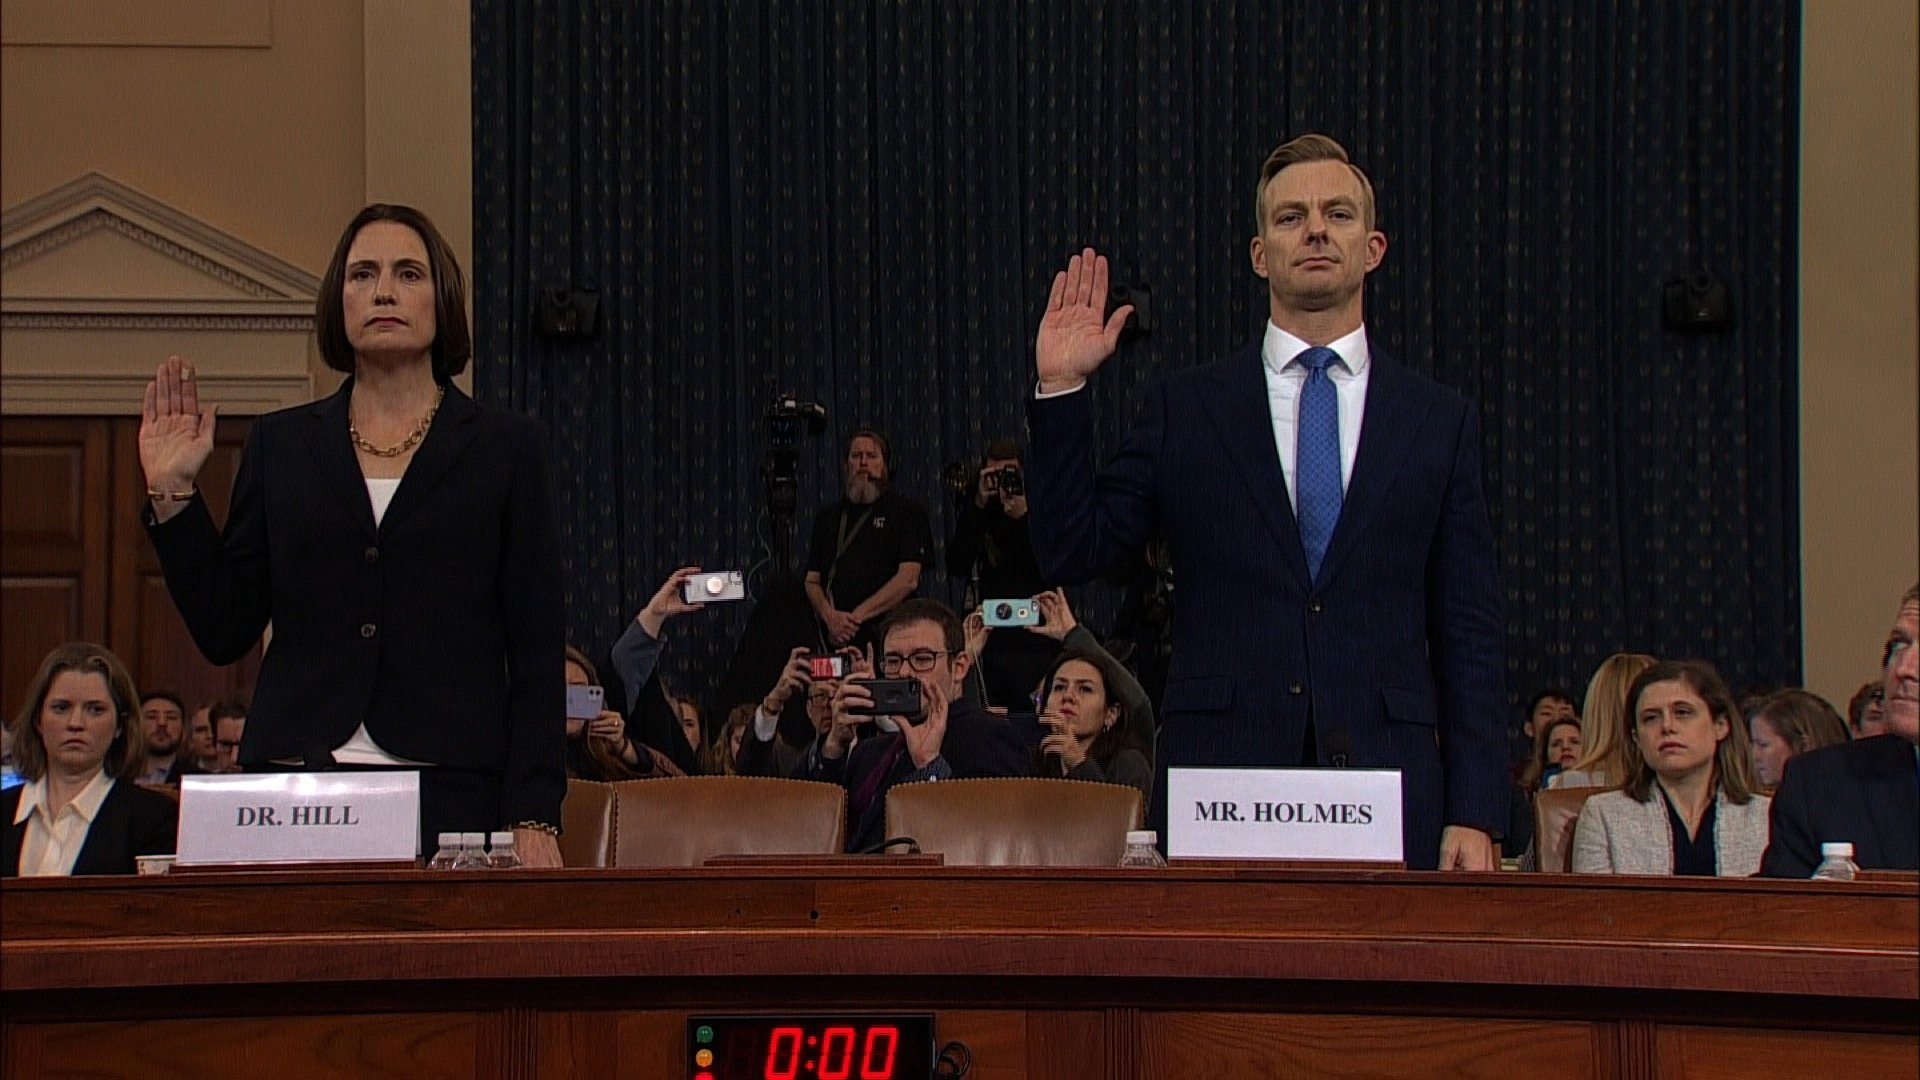 After Fiona Hill dismantles conspiracy theories, right-wing media goes on the attack